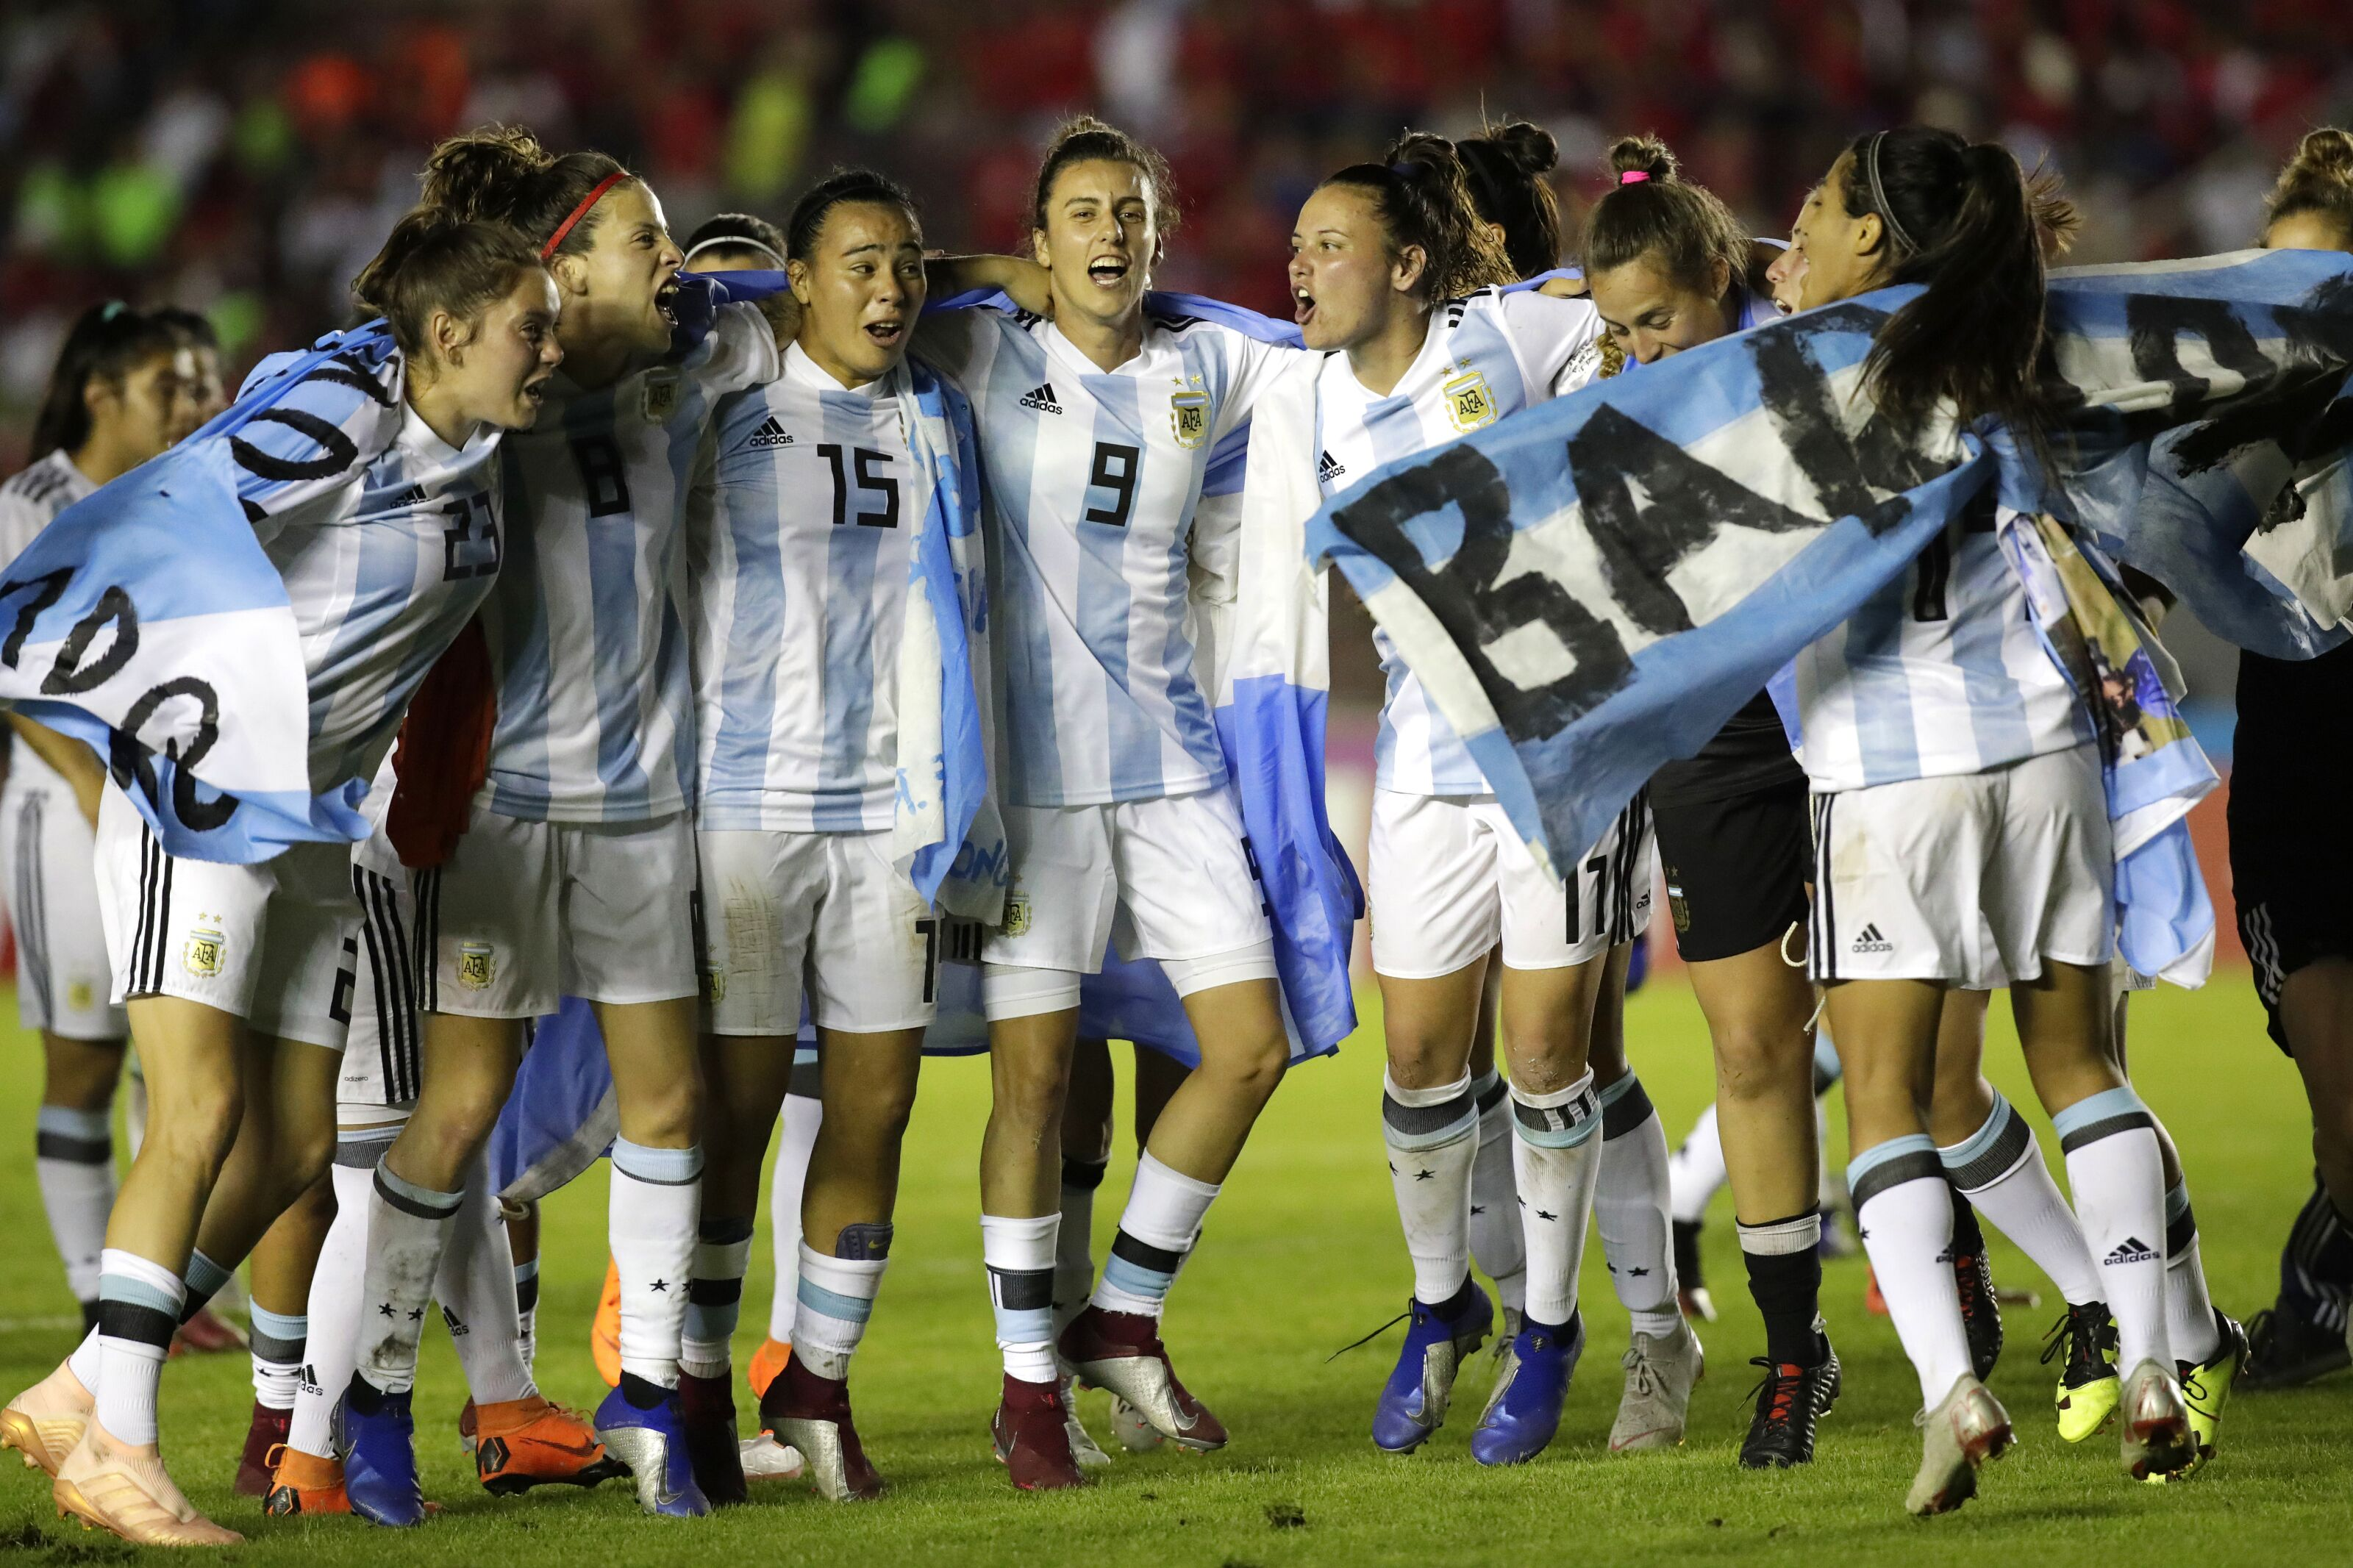 new concept 7112a d17f2 BYU Soccer: Cougars draw 1-1 with Argentina National Team